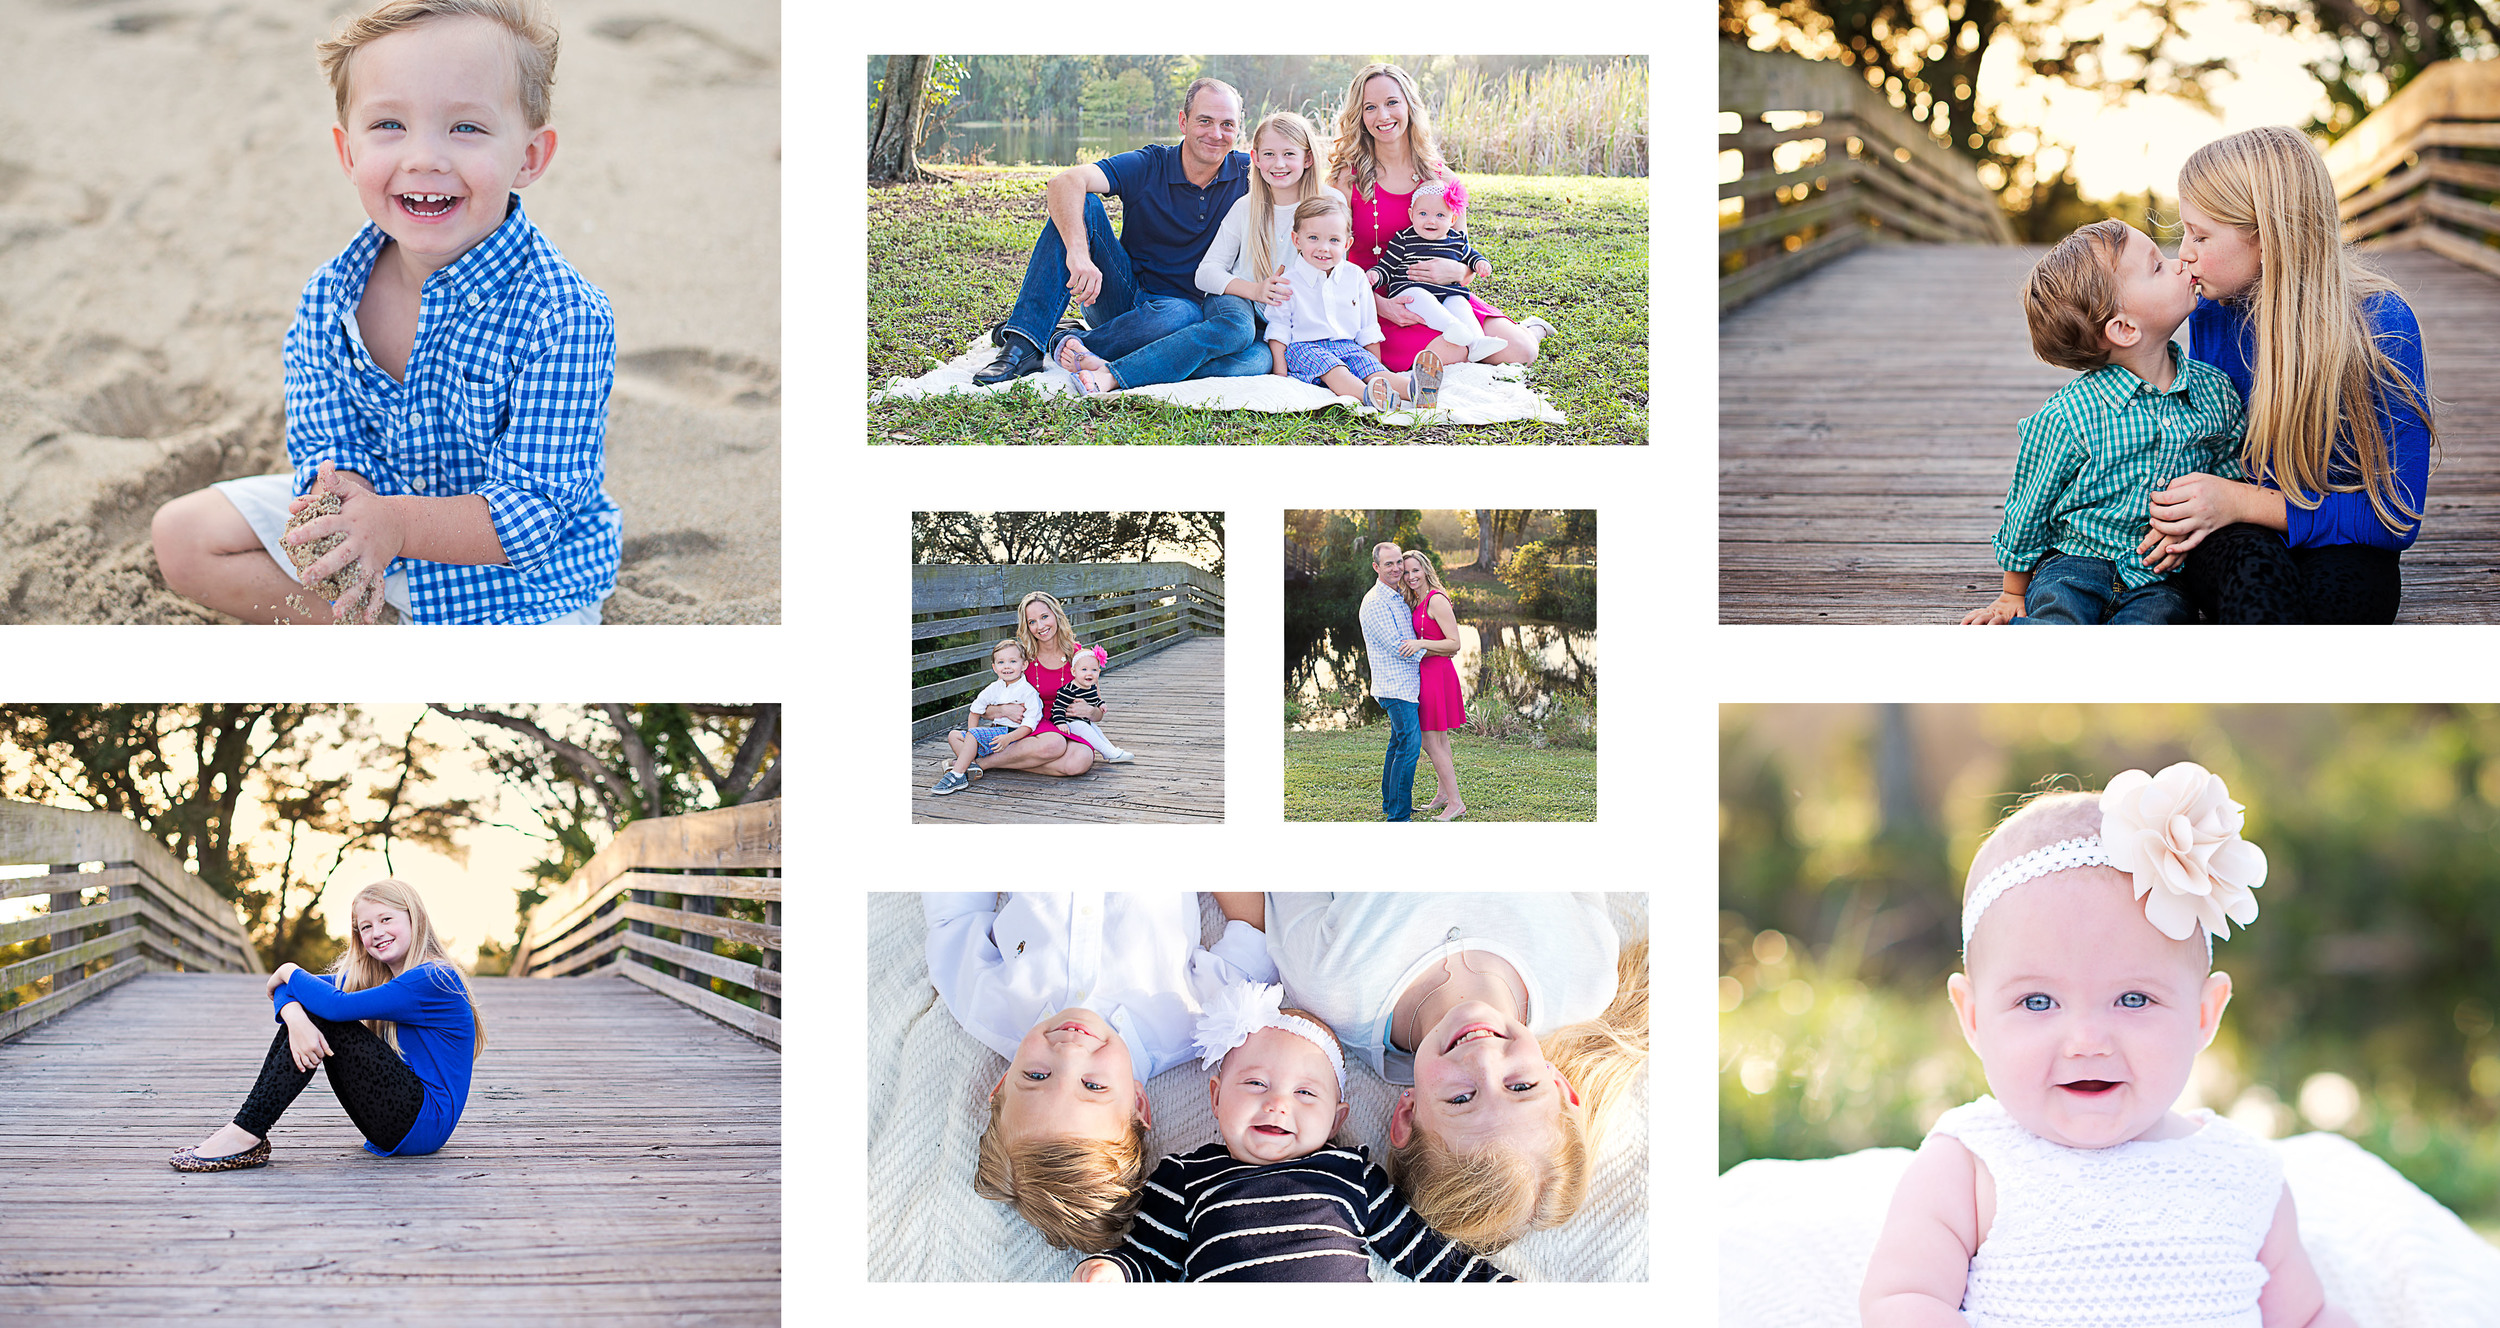 collection-2-south-florida-family-photographer